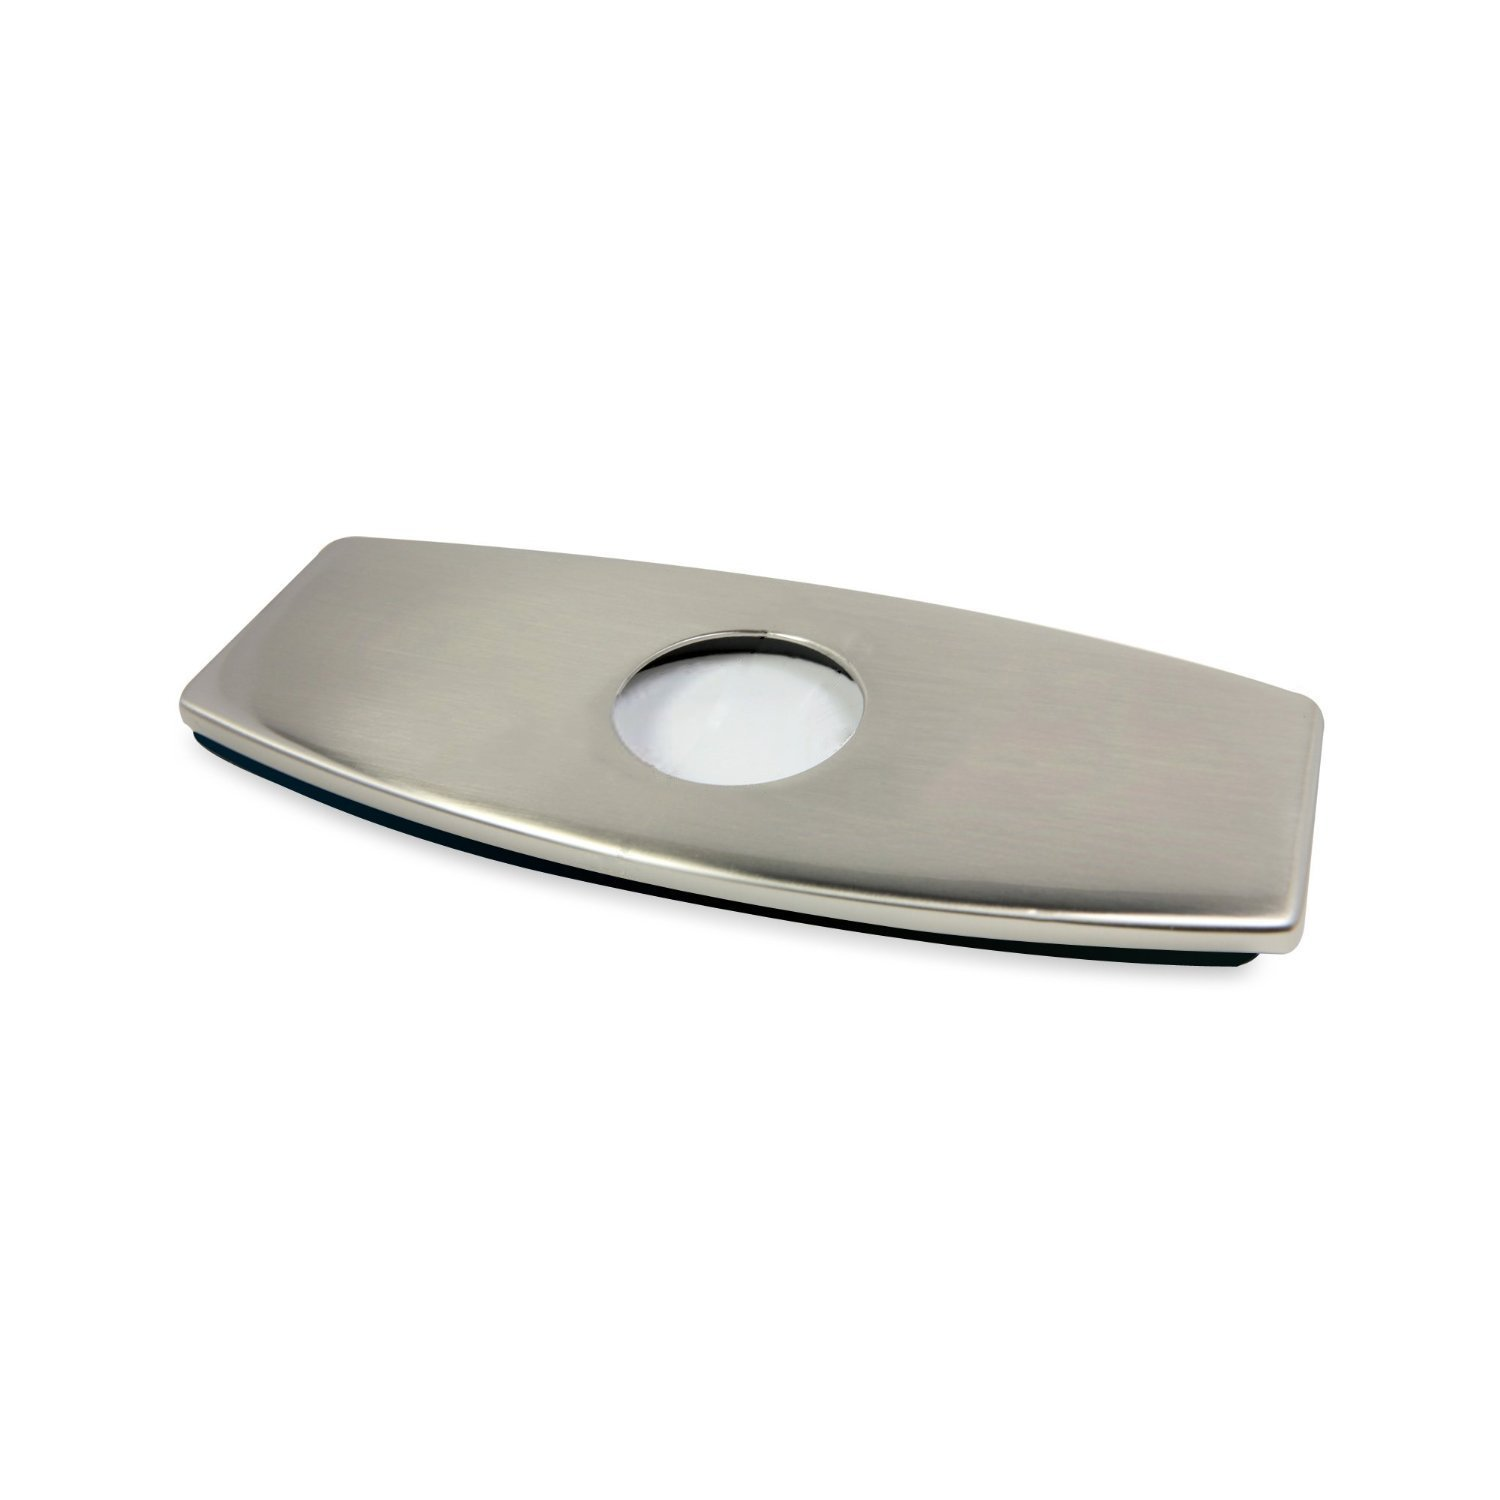 KINGO HOME Stainless Steel Bathroom Vessel Sink Faucet Deck Plate Hole Cover Escutcheon, Brushed Nickel